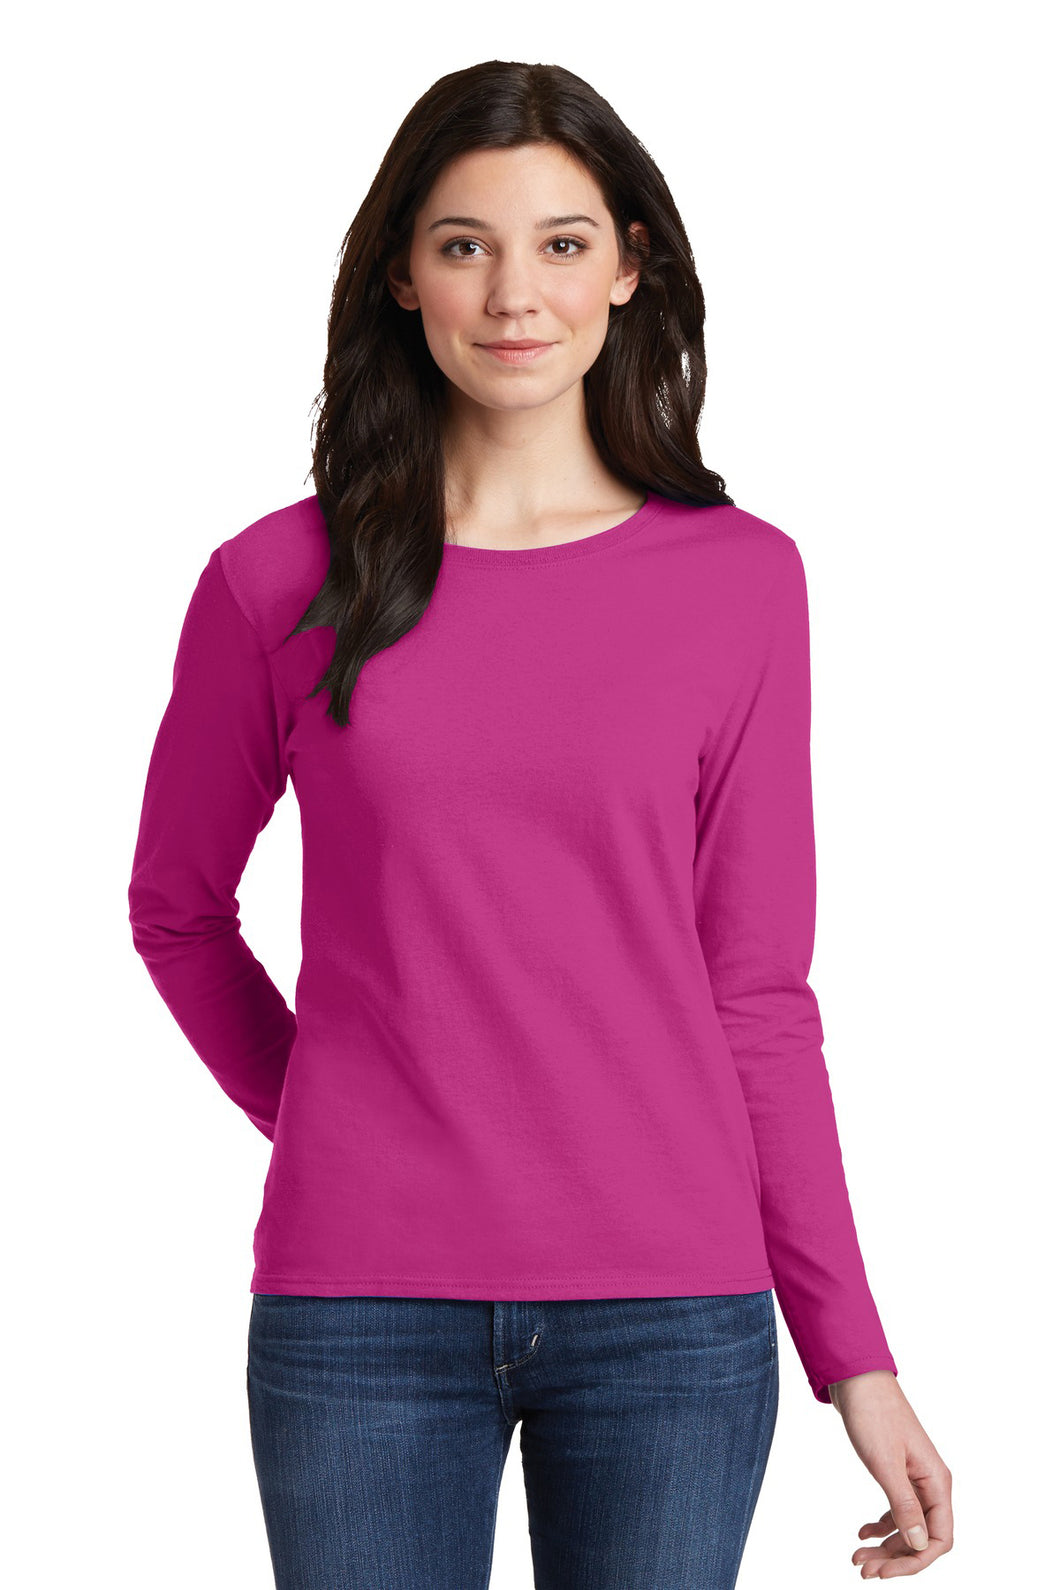 Gildan Heavy Cotton Ladies' Long Sleeve T-Shirt